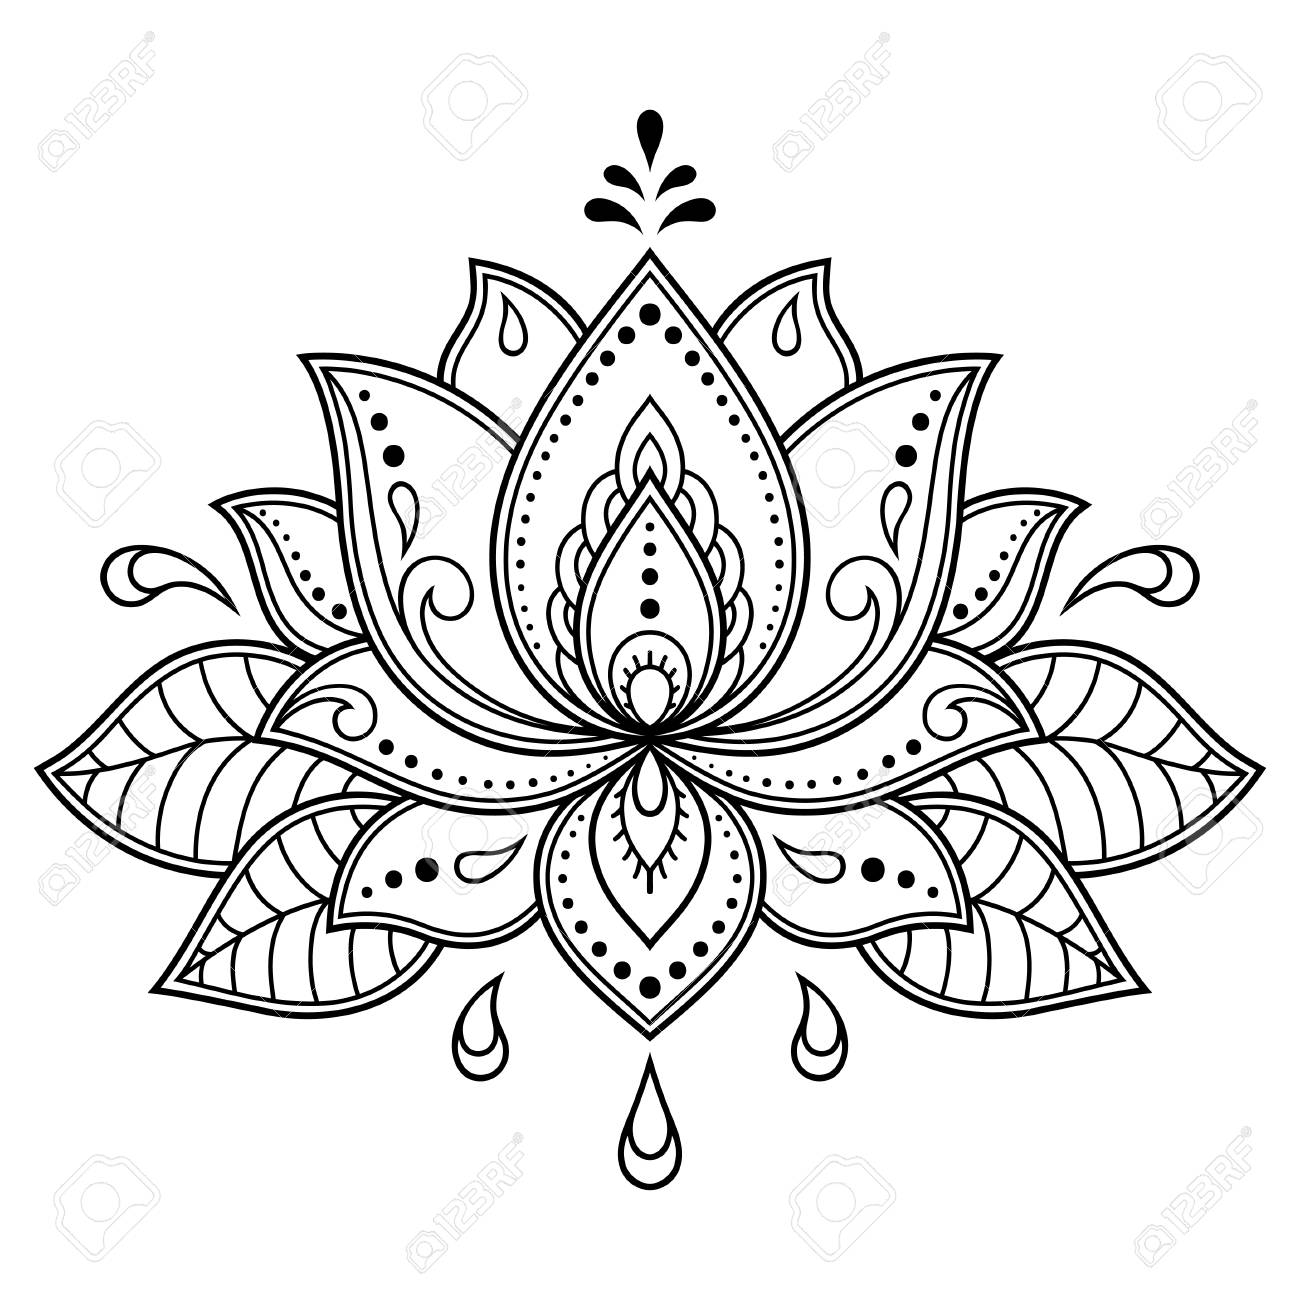 Mehndi Lotus Flower Pattern For Henna Drawing And Tattoo Decoration Royalty Free Cliparts Vectors And Stock Illustration Image 125577052